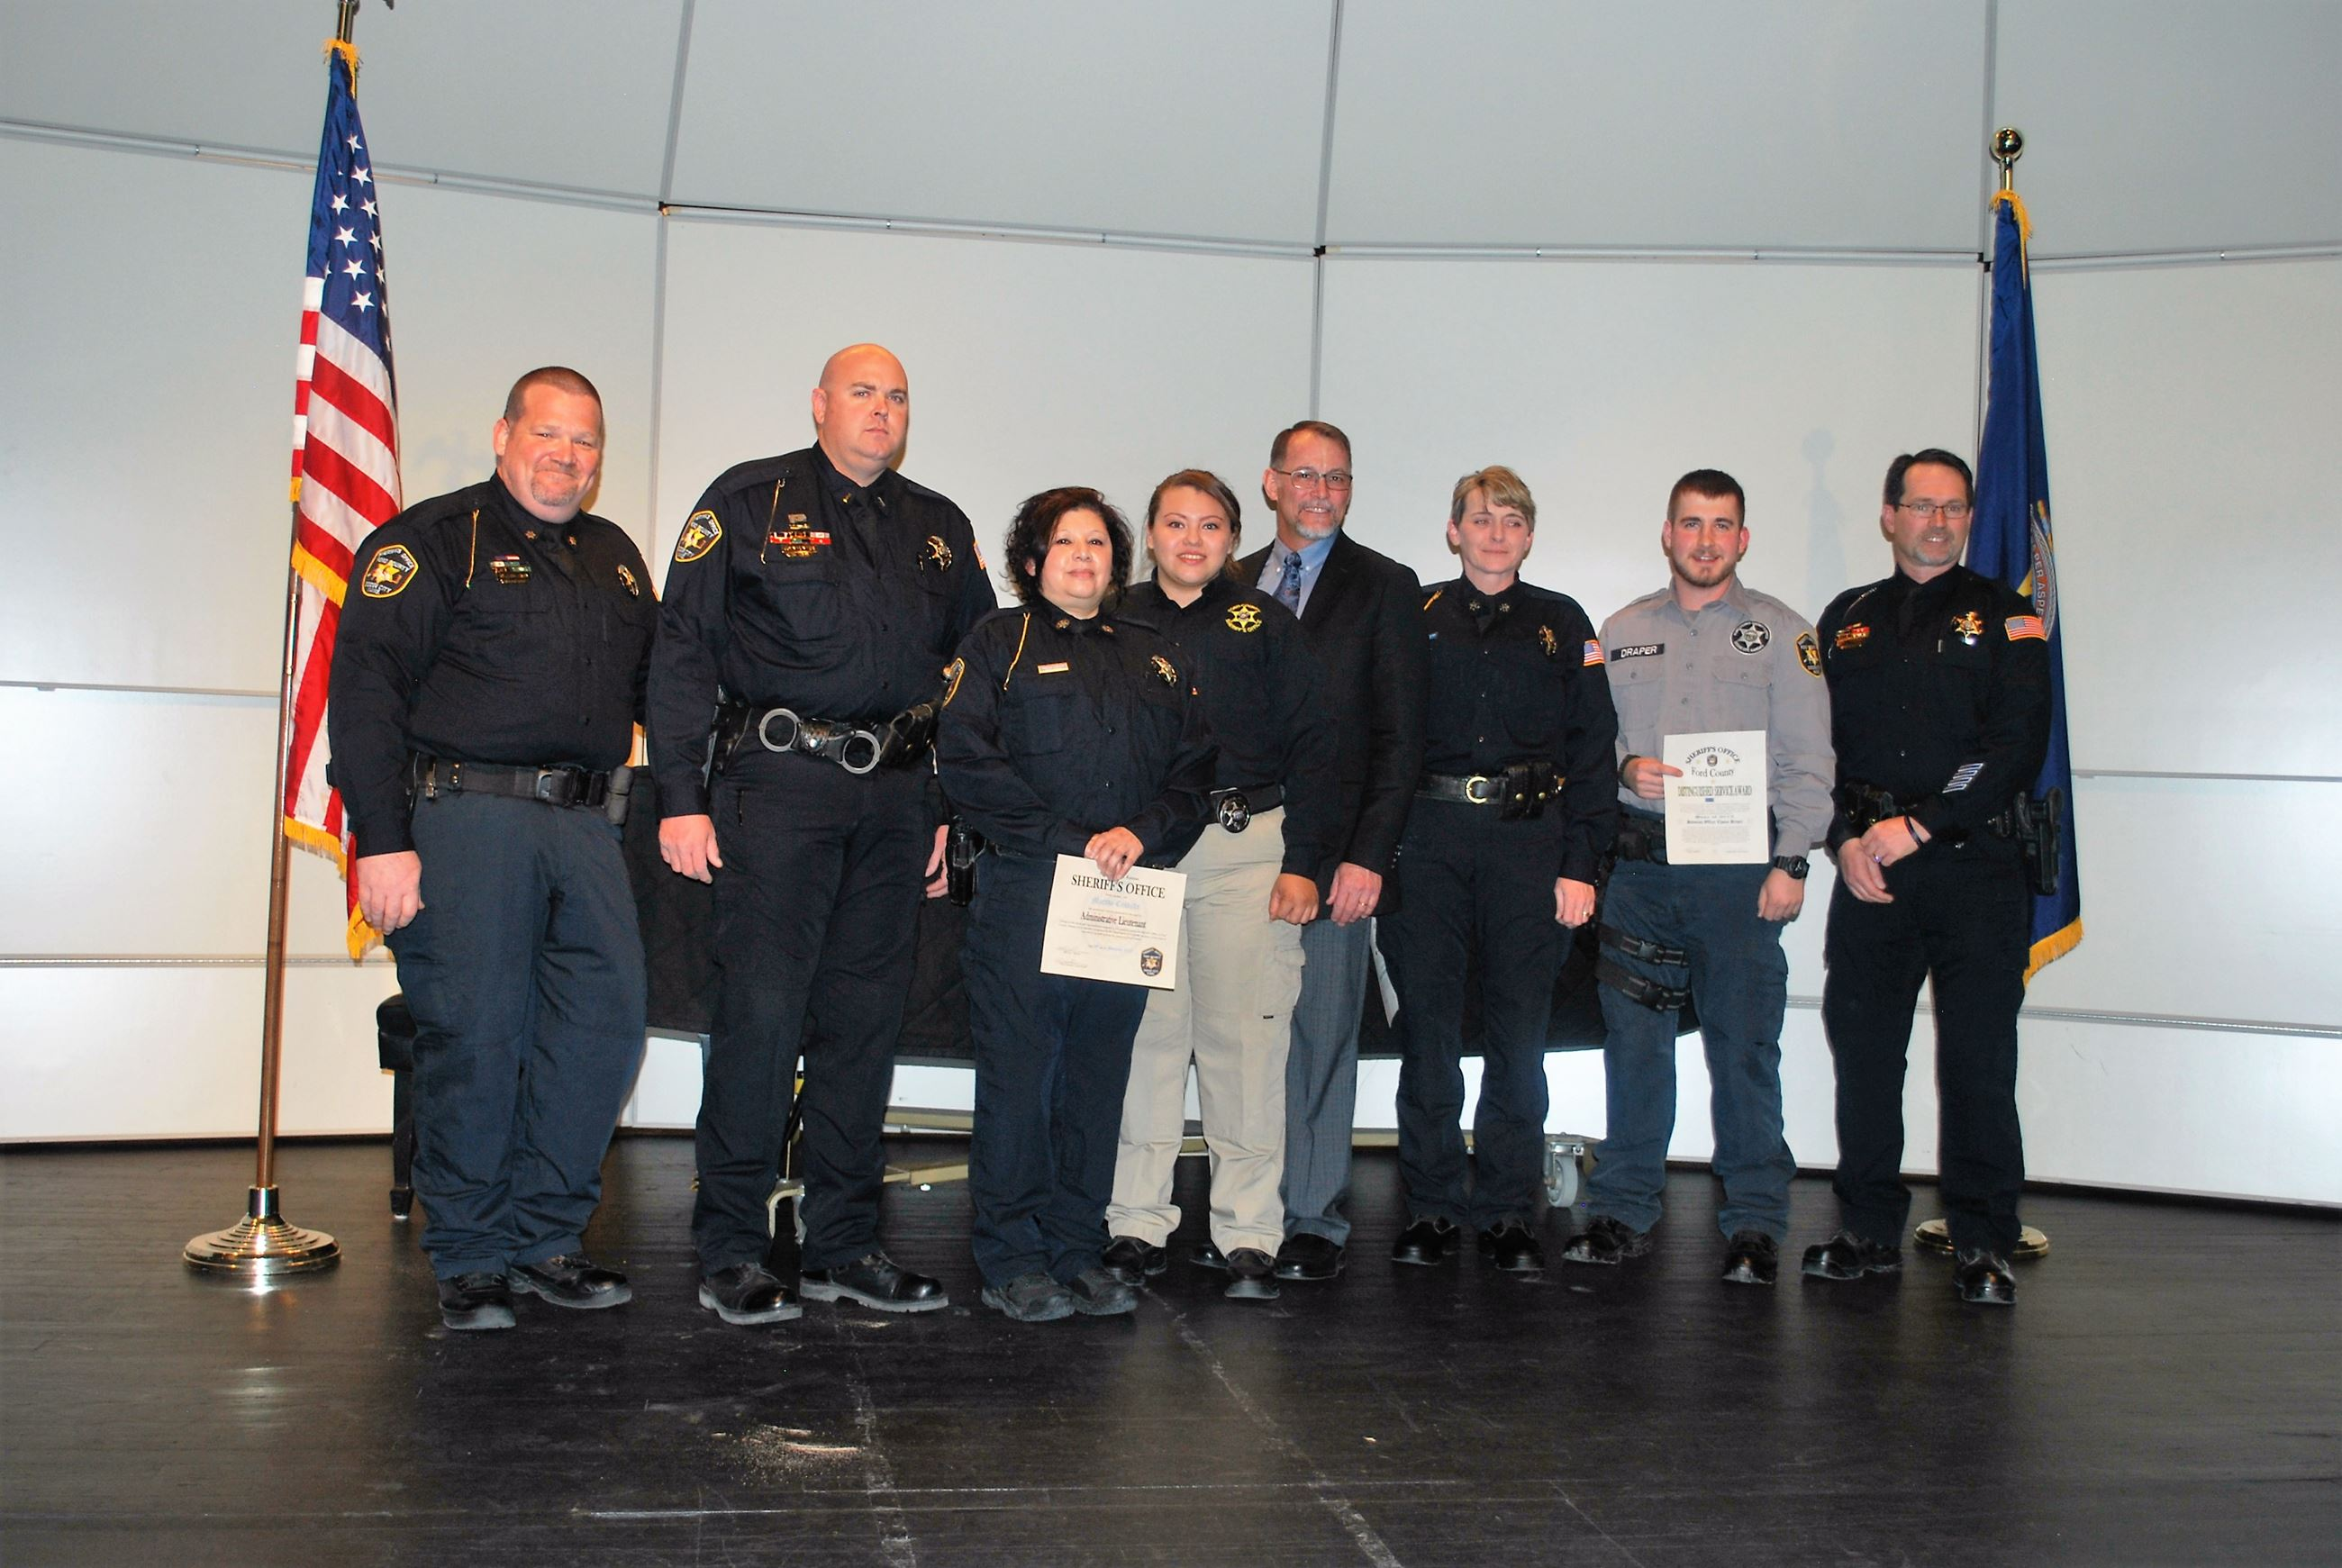 Sheriff's Office Awards